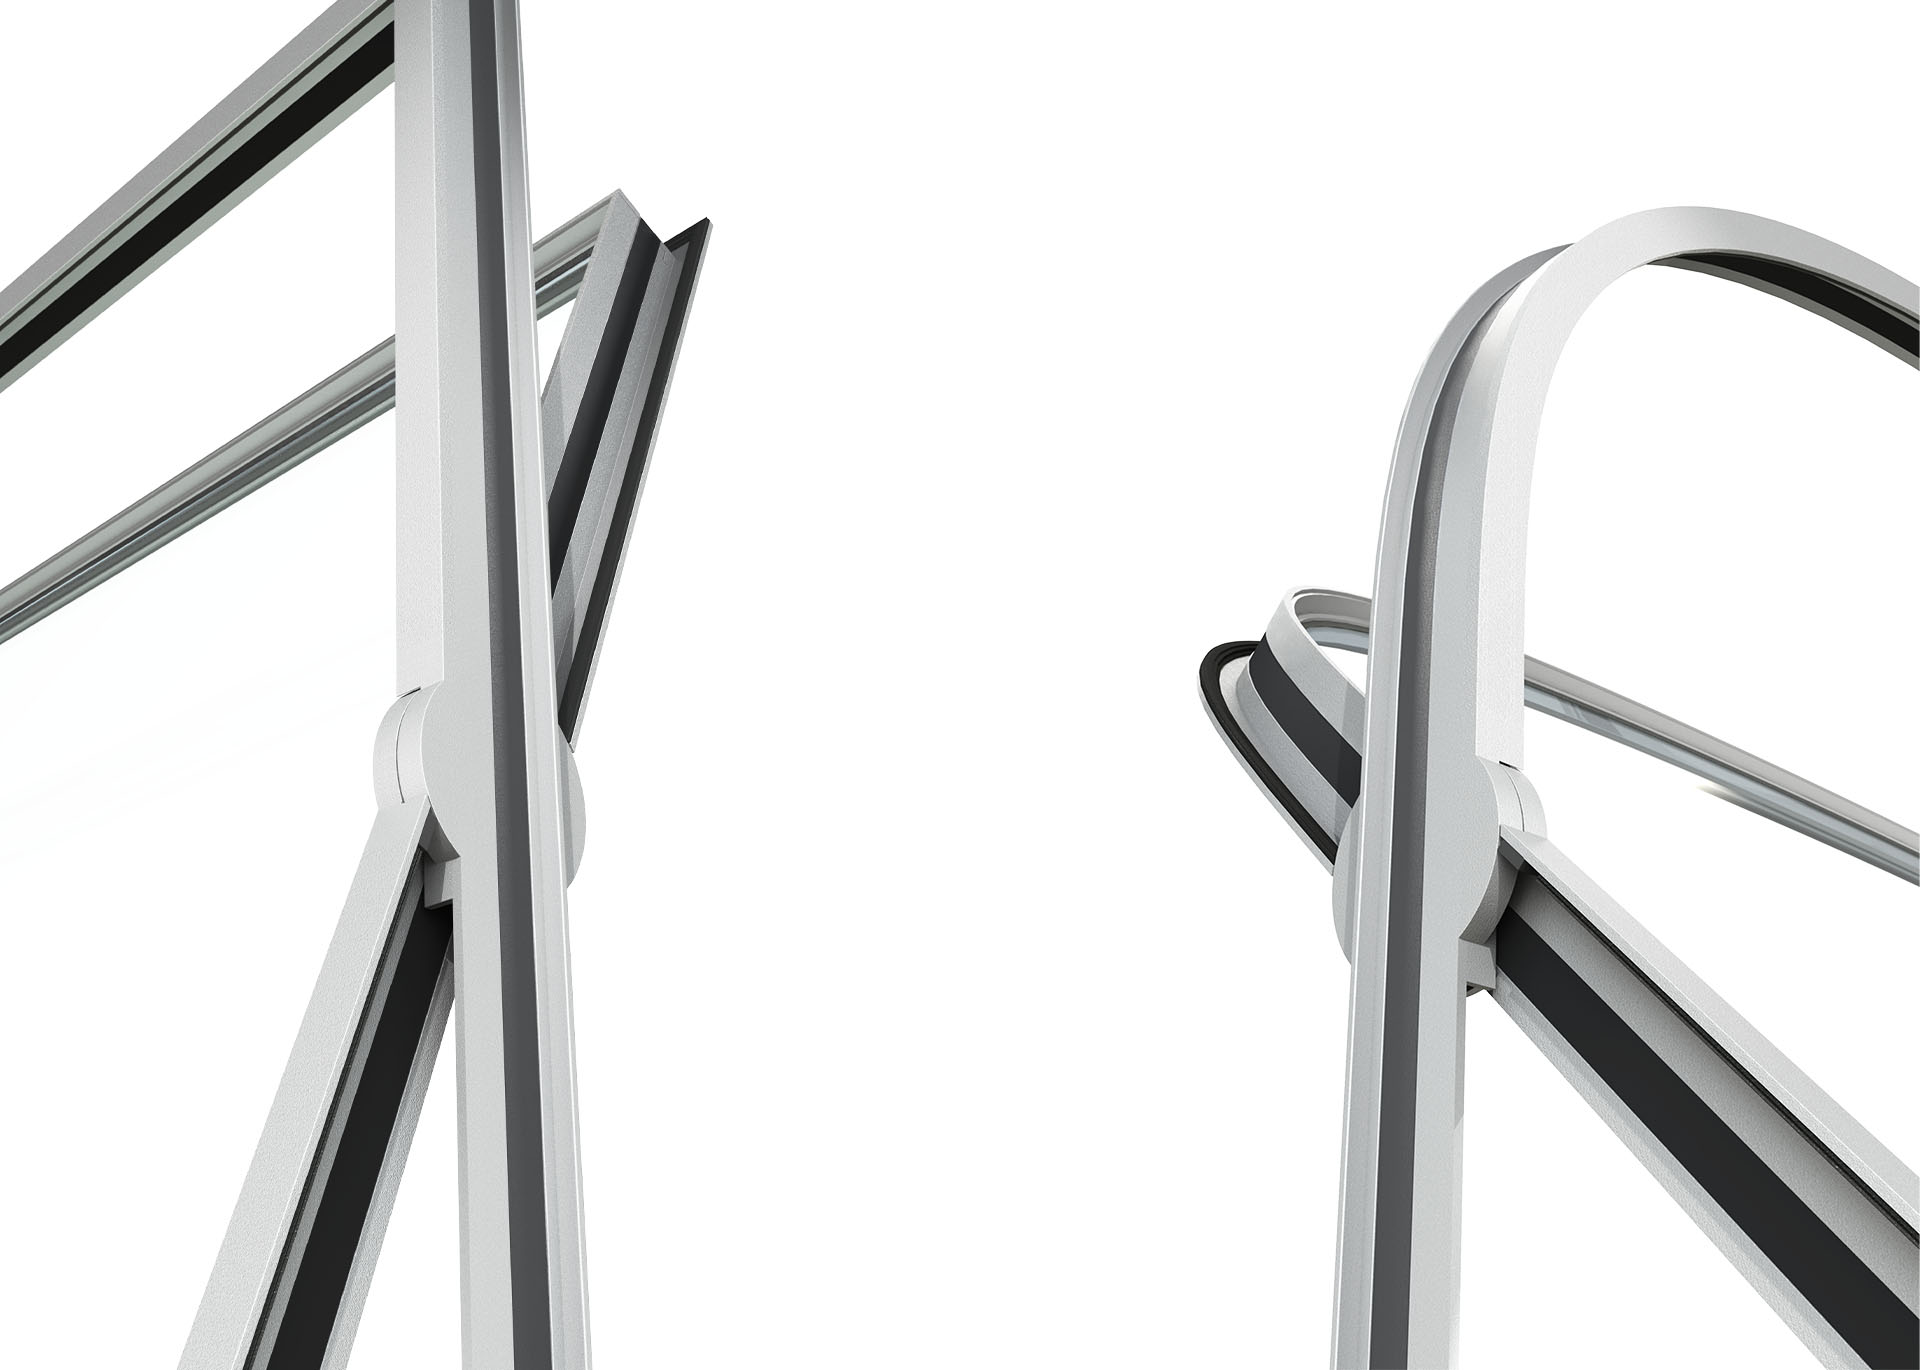 3d rendering detail of MHB steel pivot door curves and angles